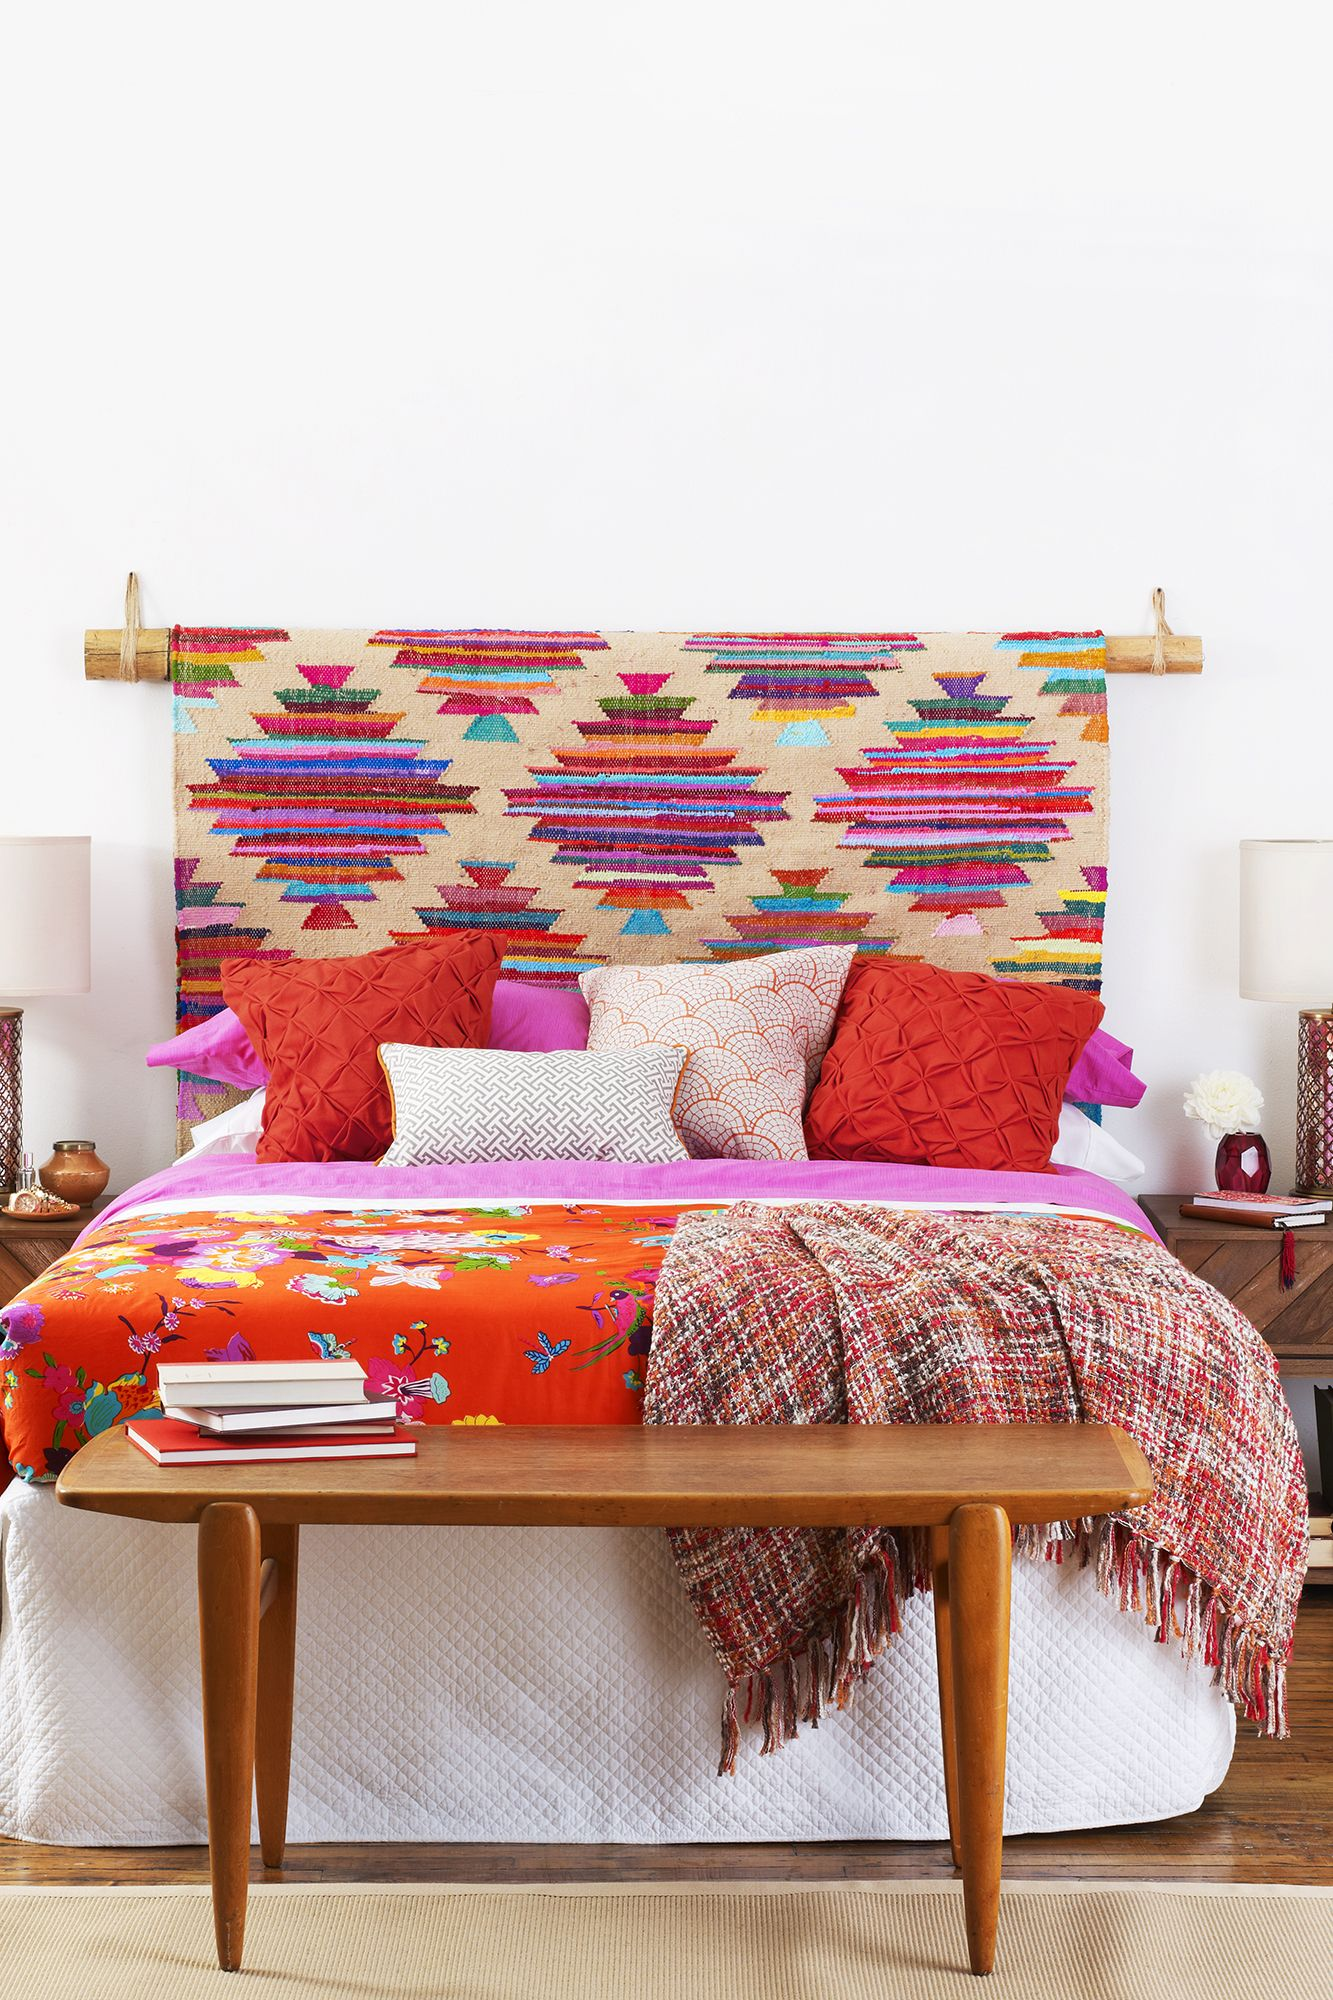 13 Boho Bedroom Ideas Decorating A Bohemian Bedroom On A Budget